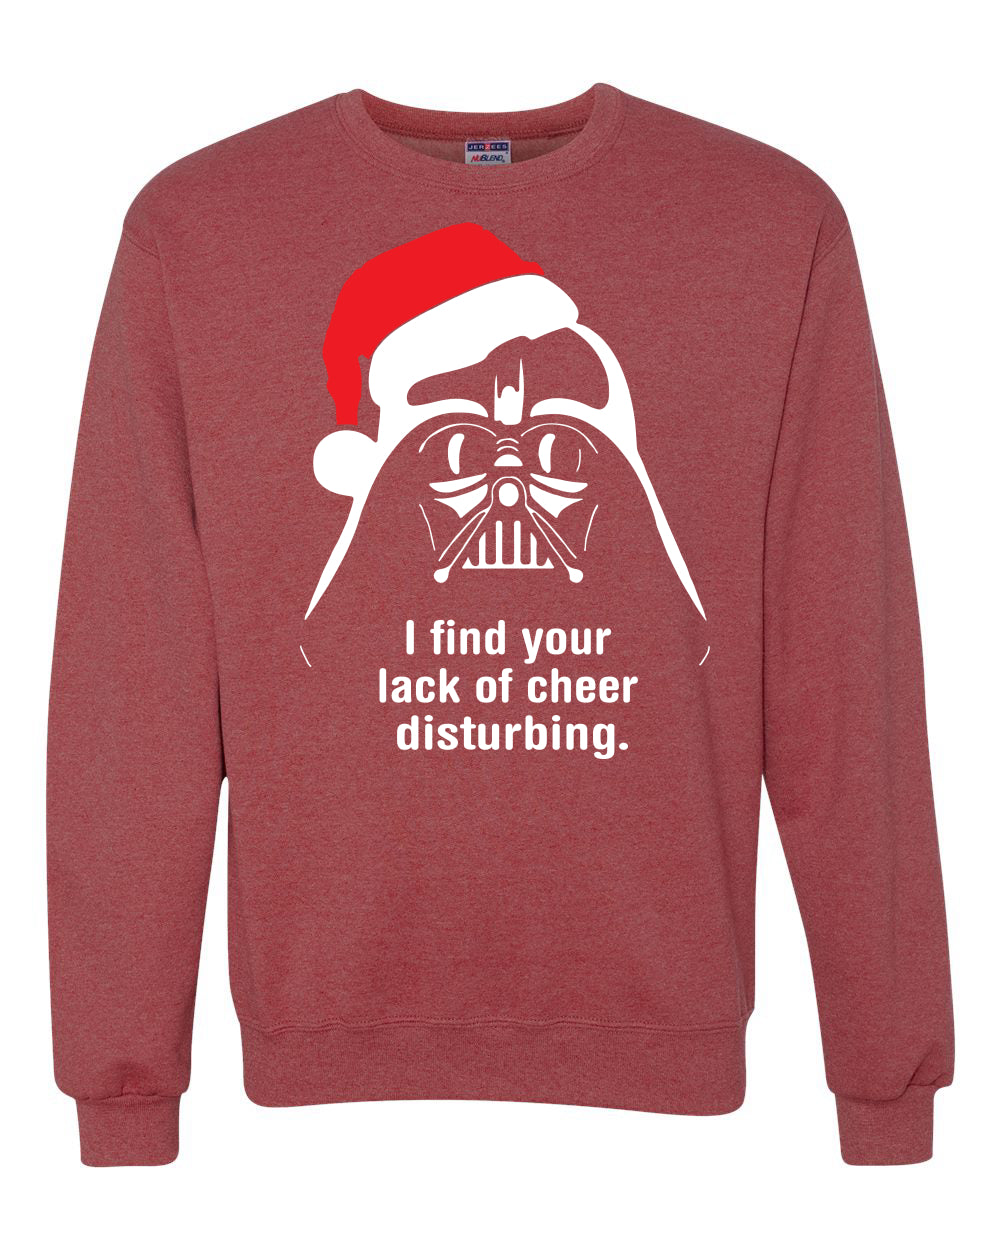 I Find Your Lack of Cheer Disturbing Christmas Unisex Crewneck Graphic Sweatshirt